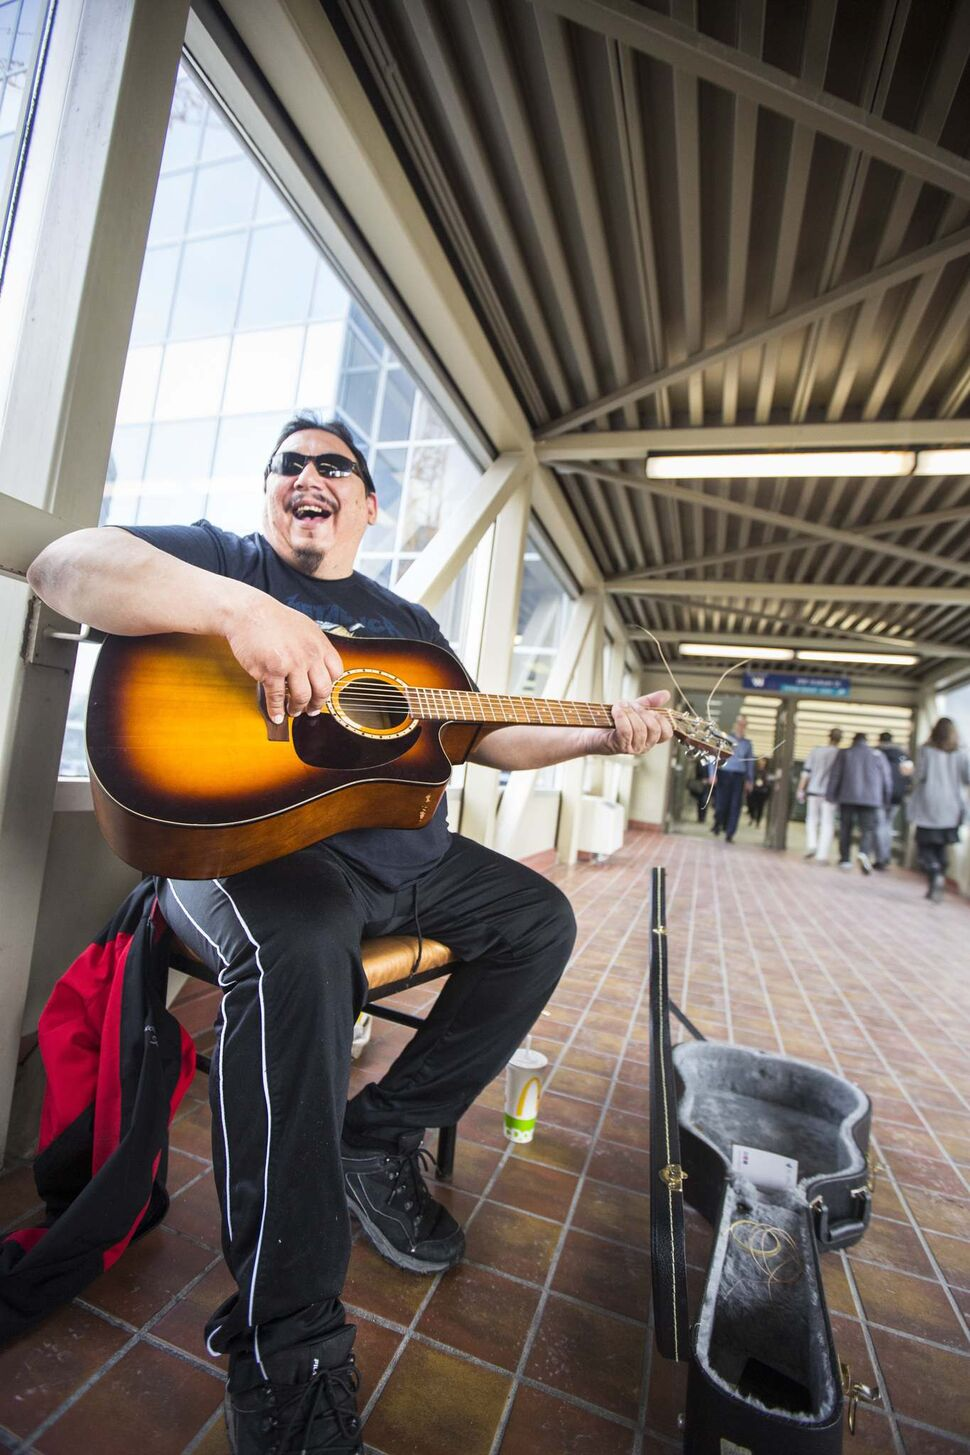 Lucien Spence is one of the artists you will find in the skywalk. (Mikaela MacKenzie / Free Press files)